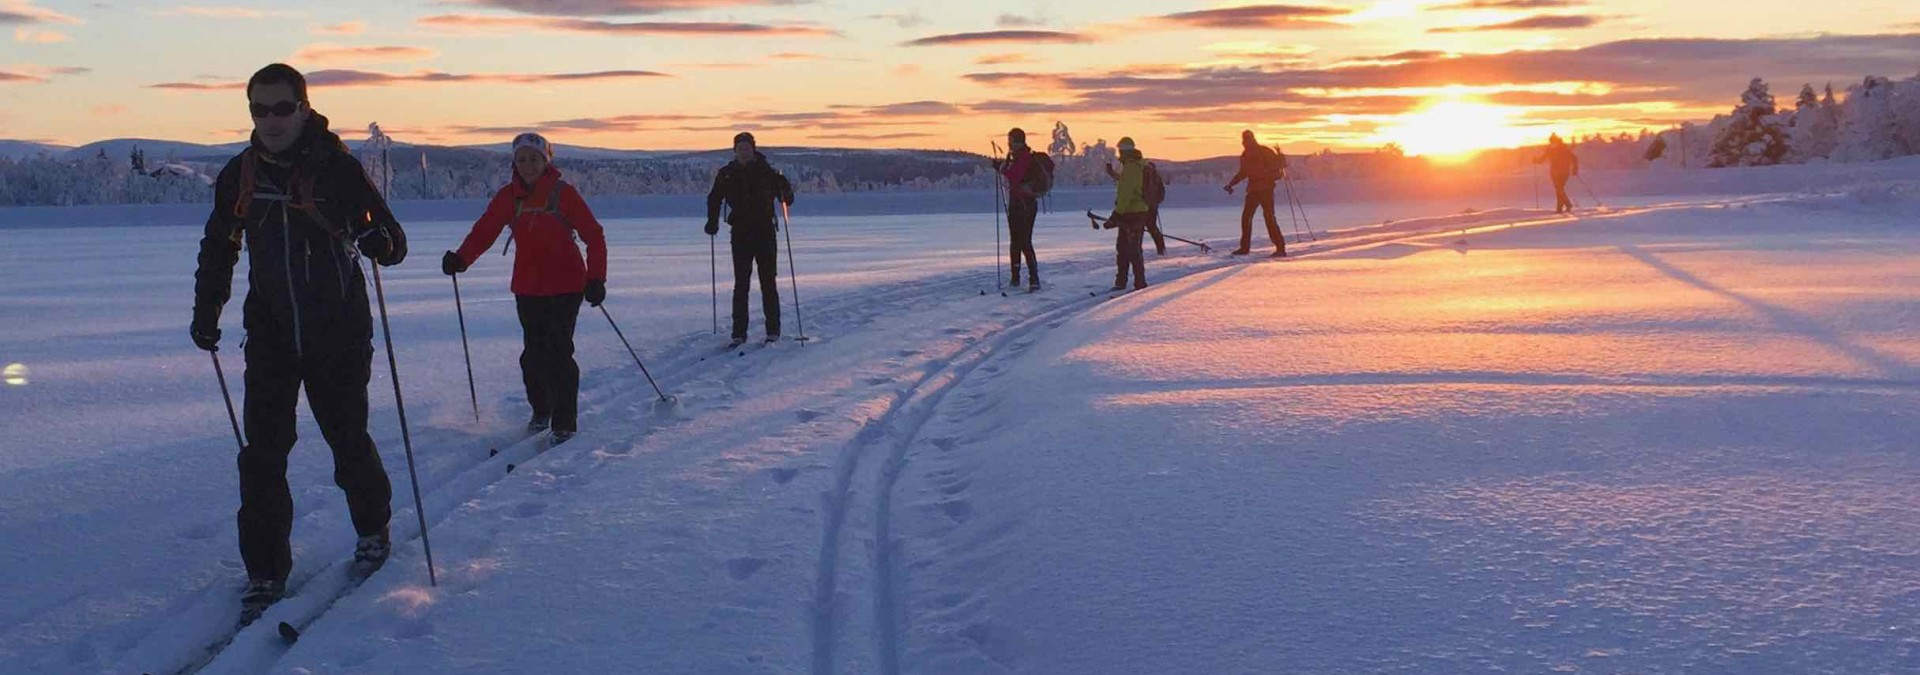 Nordic in Norway: Venabu - The sun sets on another fine day